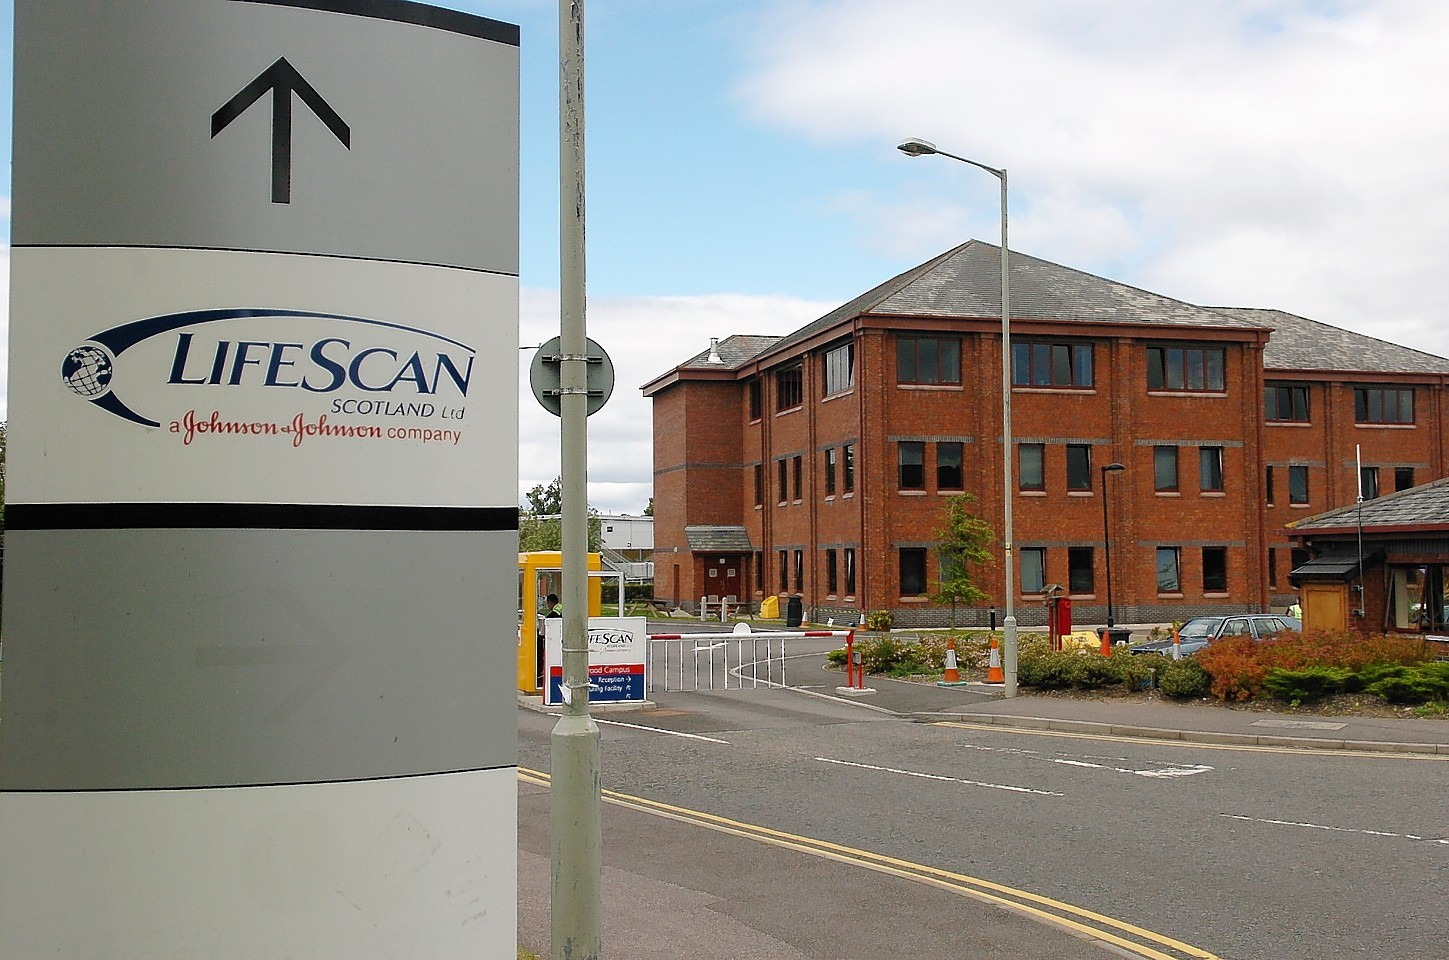 LifeScan Scotland's HQ in Inverness